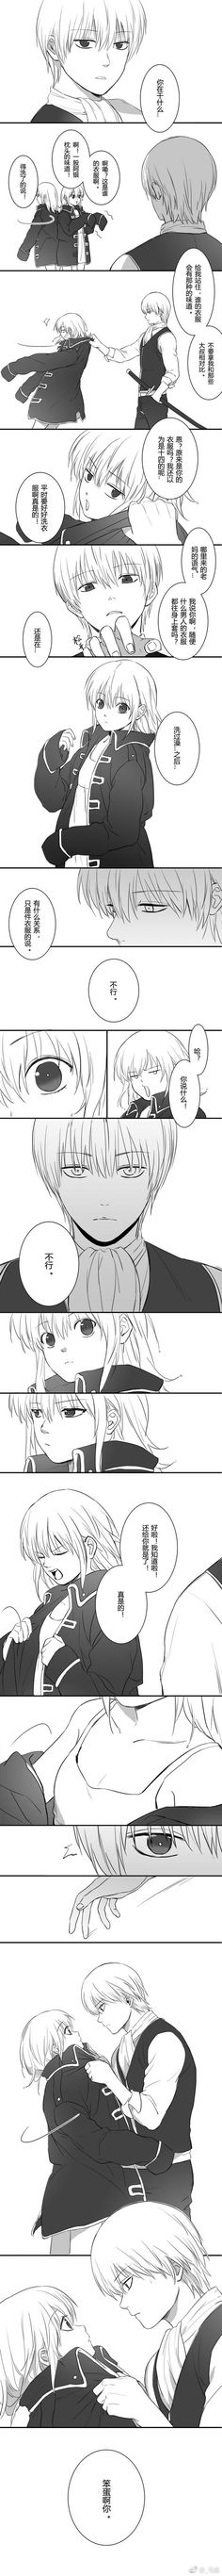 Sougo Okita x Kagura [OkiKagu] Manga Drawing, Manga Art, Anime Manga, Okikagu Doujinshi, Couple Manga, Gintama Wallpaper, Hakkenden, Cute Anime Couples, Anime Comics